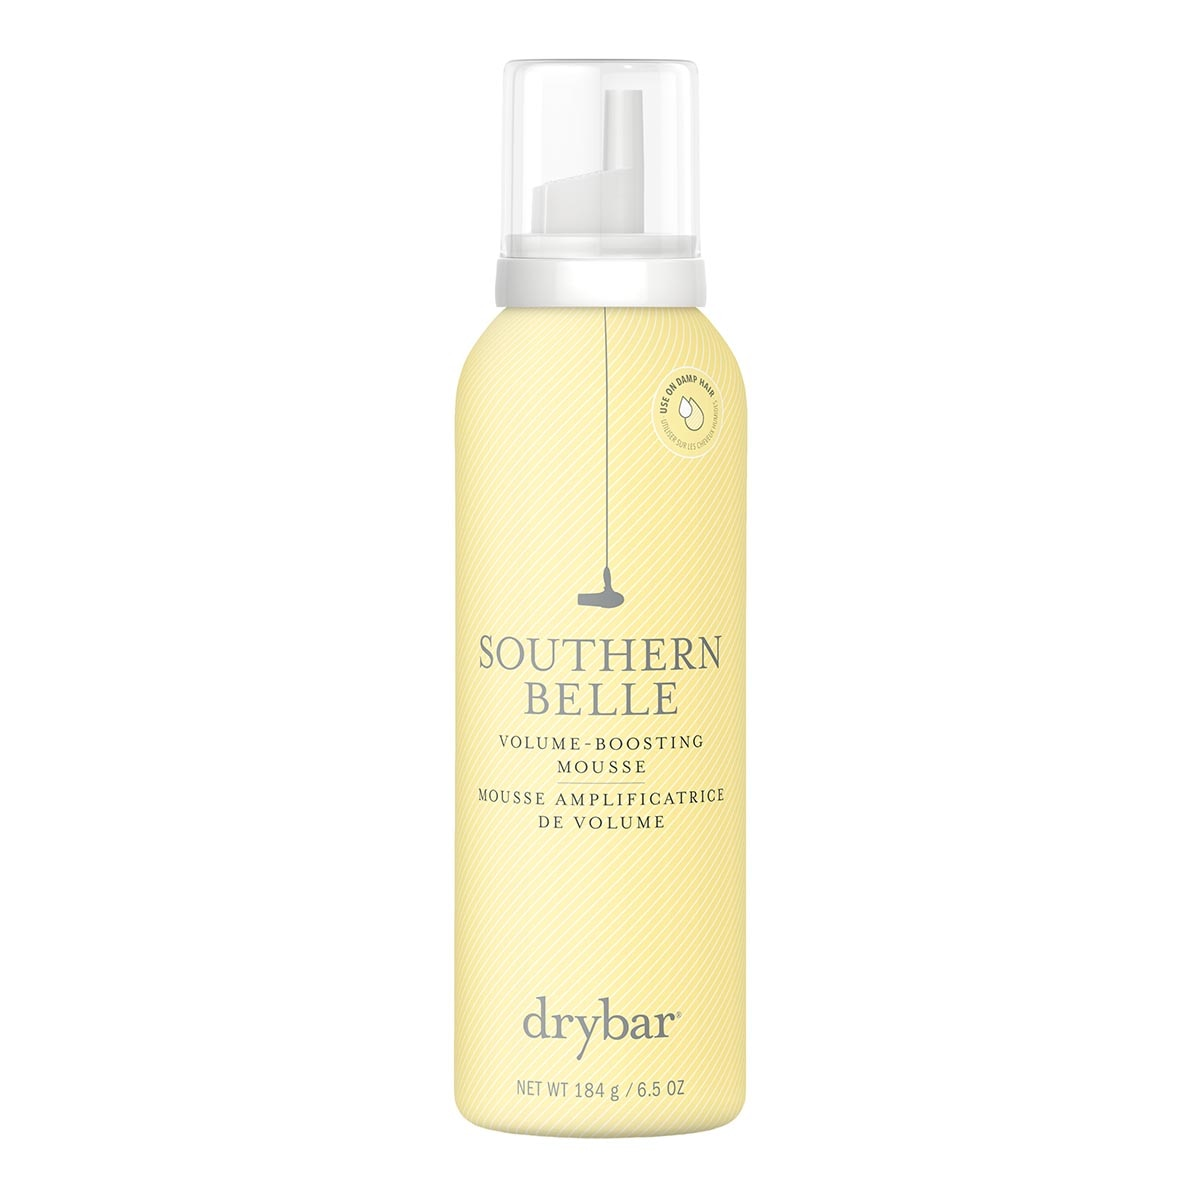 SOUTHERN BELLE VOLUME-BOOSTING MOUSSE